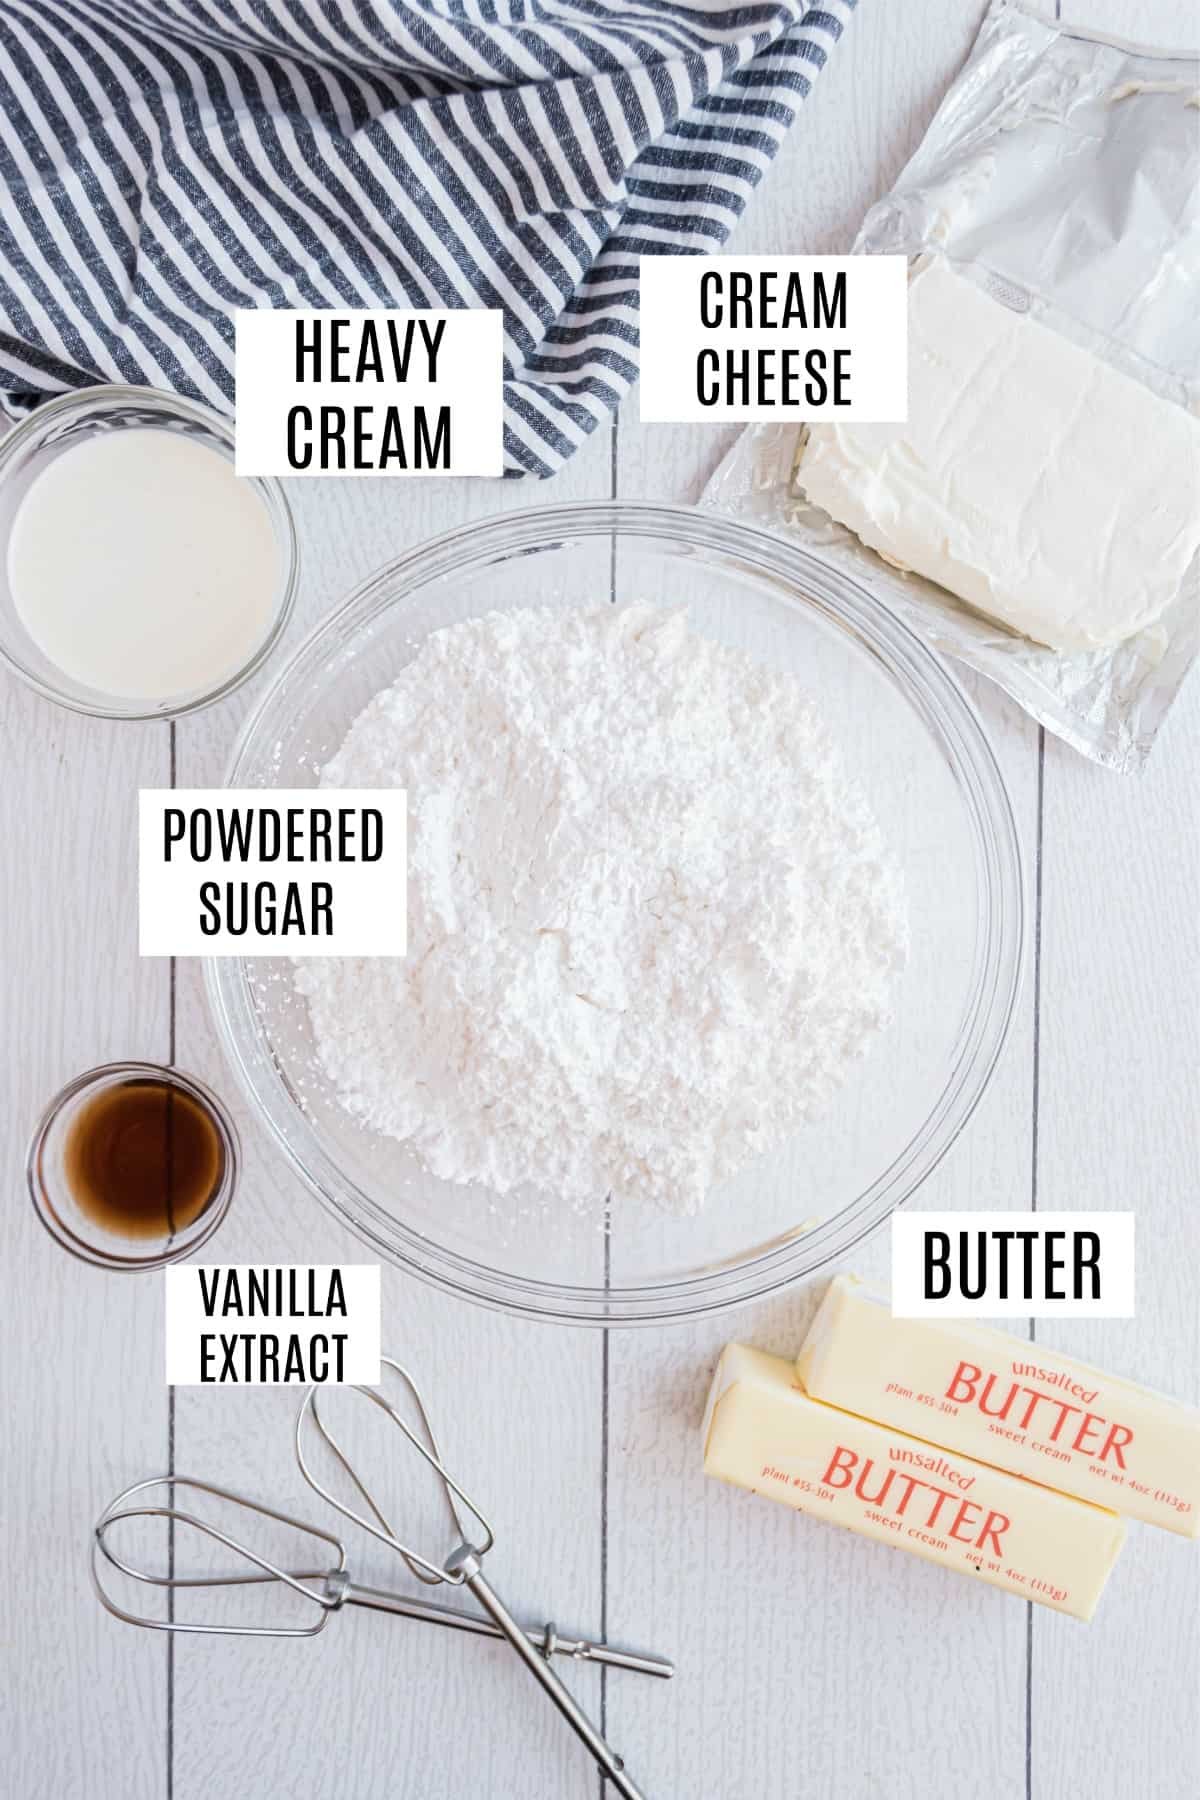 Only 5 ingredients needed to make cream cheese frosting from scratch.